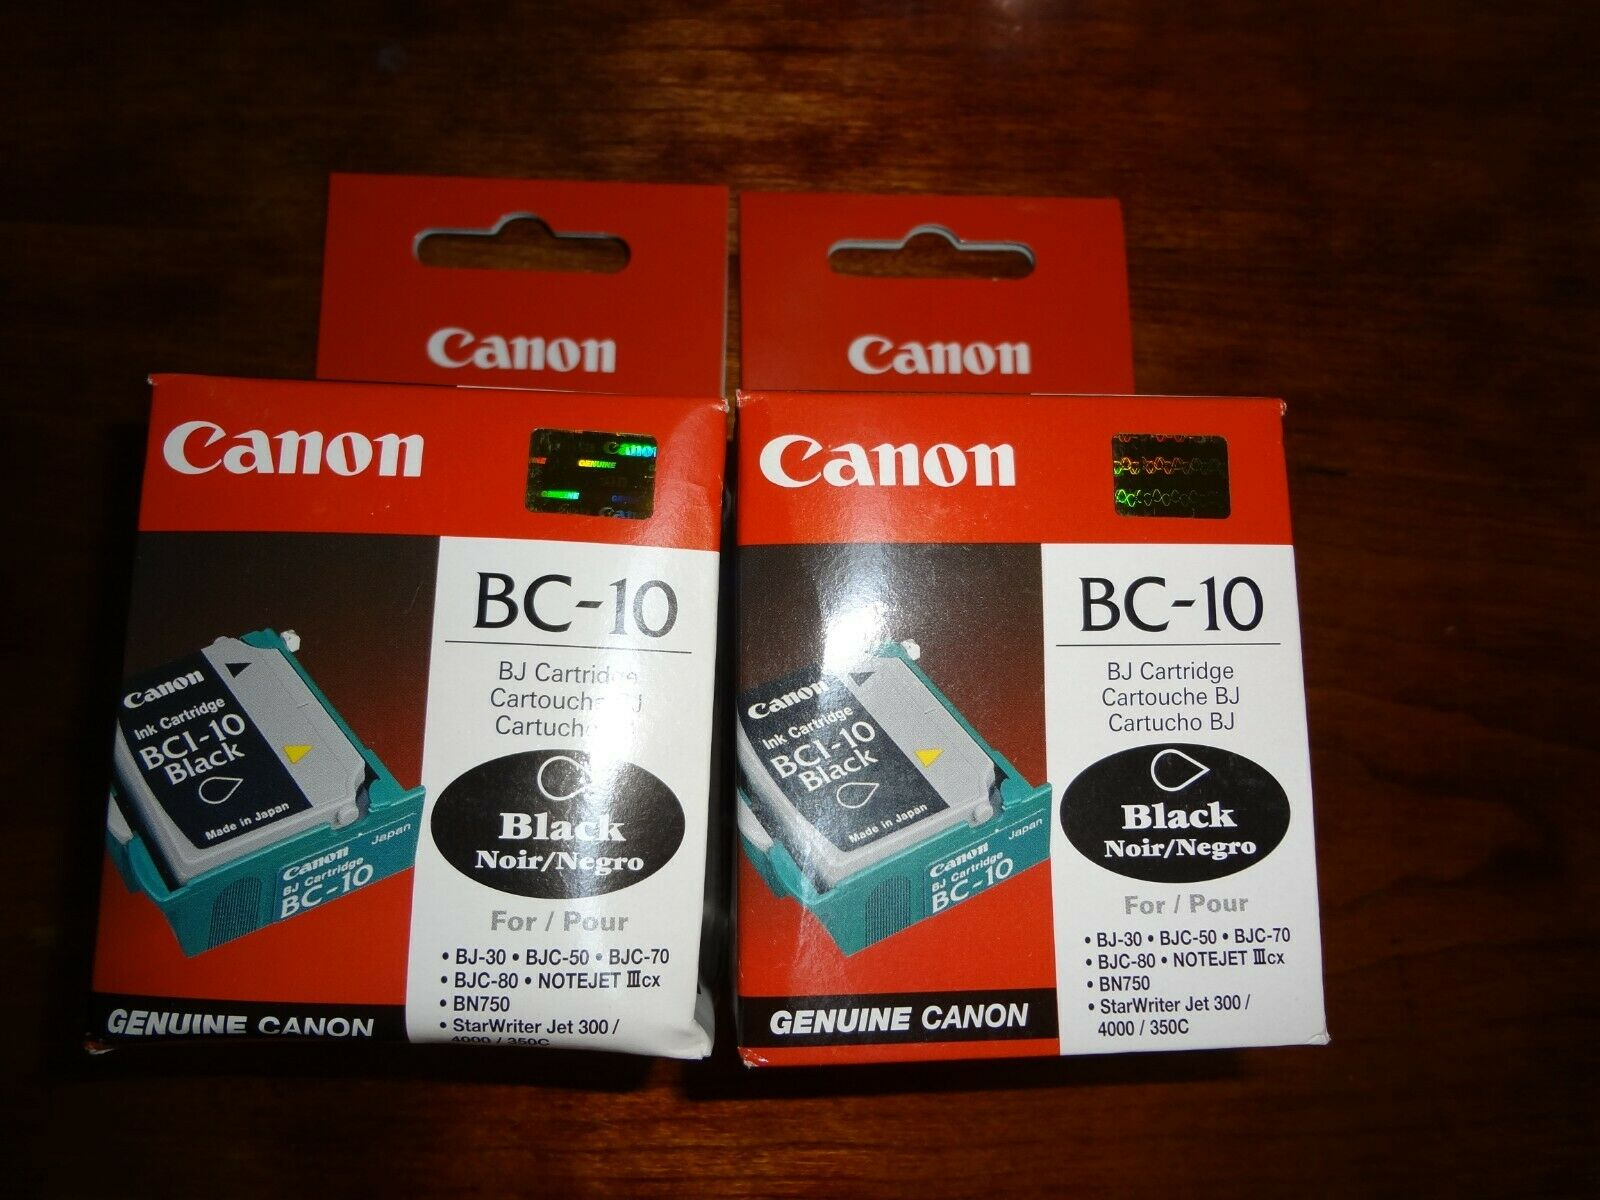 LOT OF 2 NEW GENUINE CANON BC-10 PRINTHEAD NOTEJET lllcx starwriterjet 300 4000